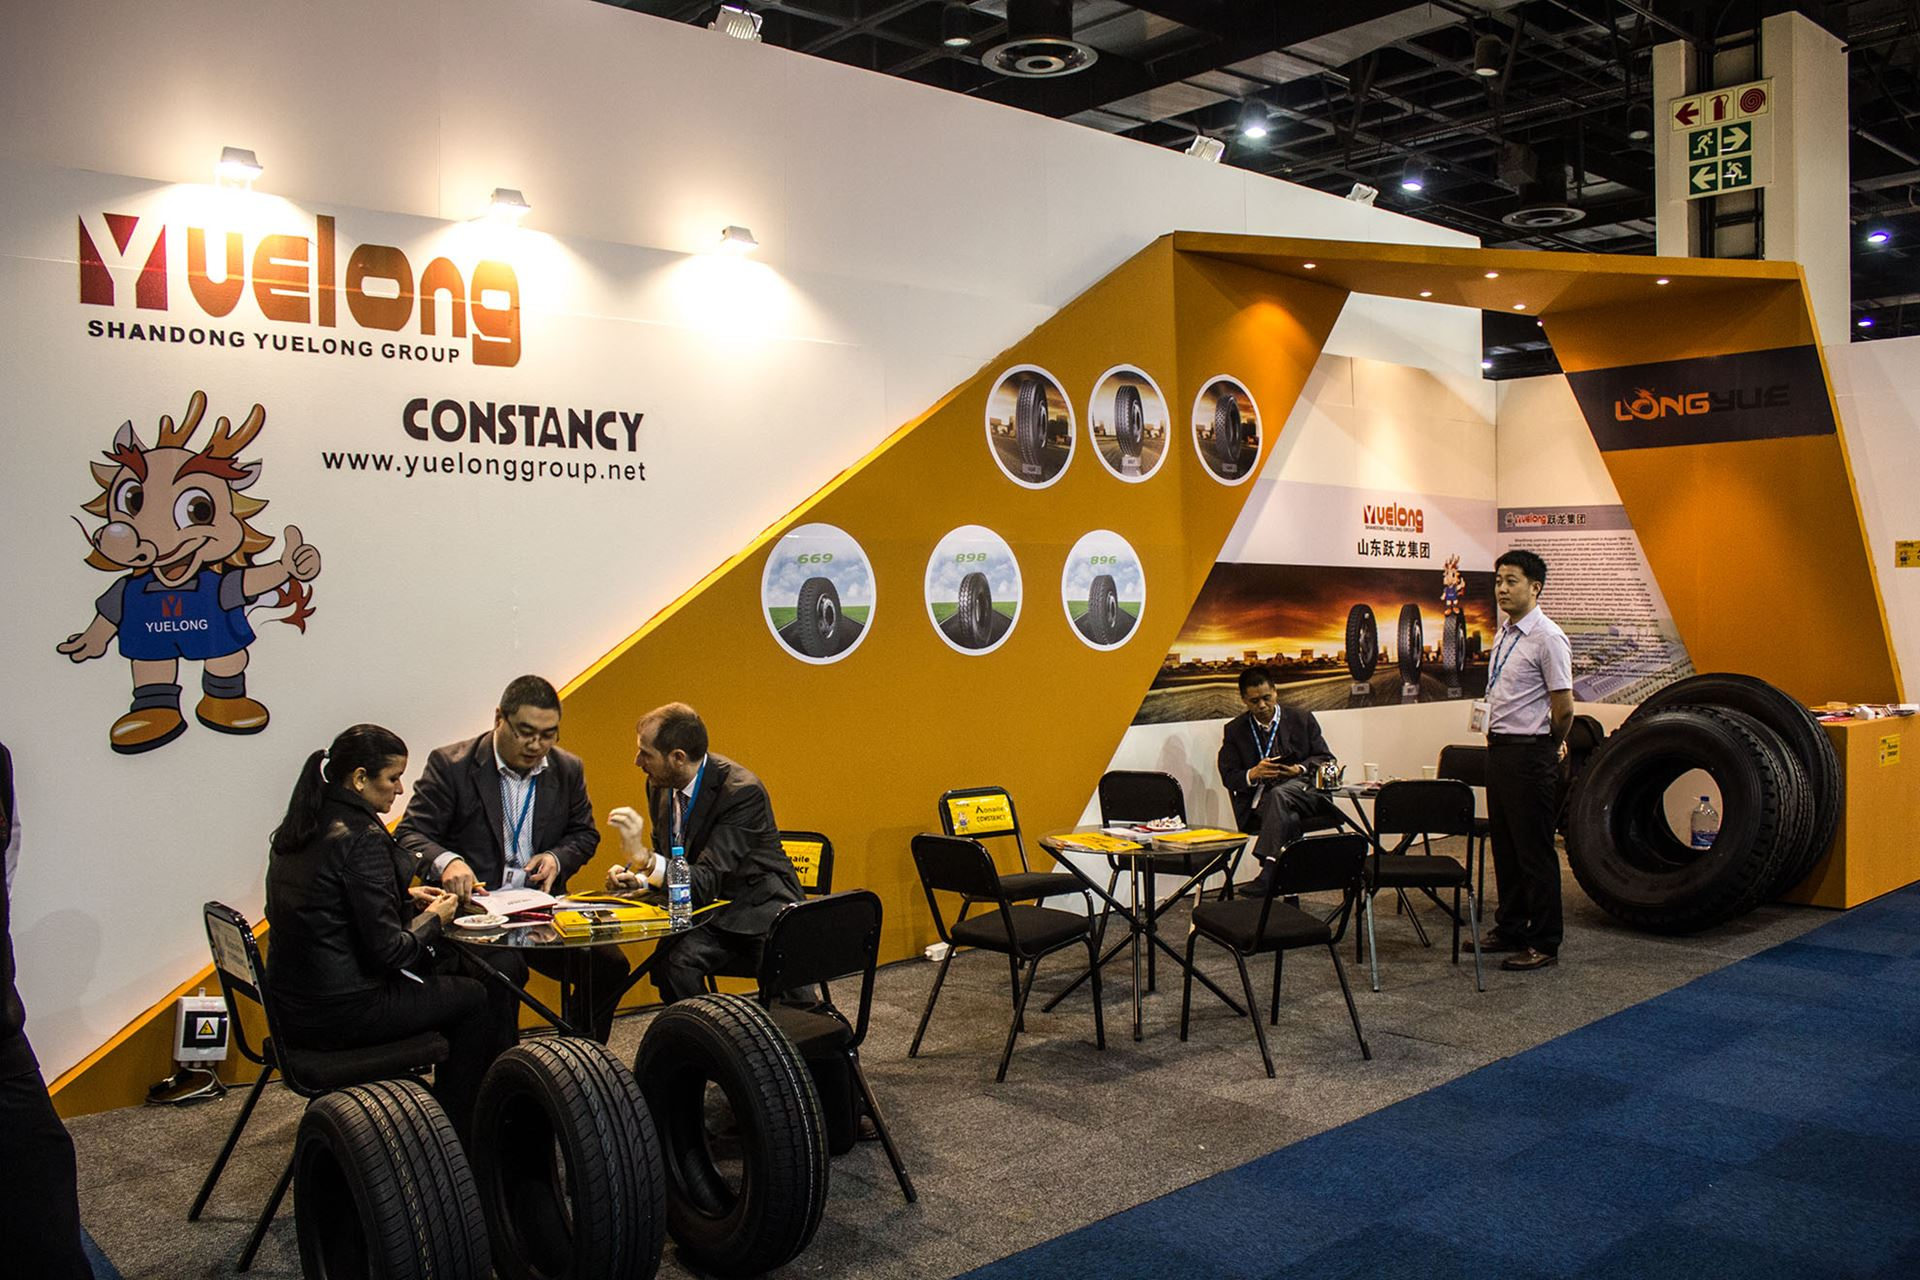 Tyre-Expo-South-Africa-2014-yuelong-shadong-tyres